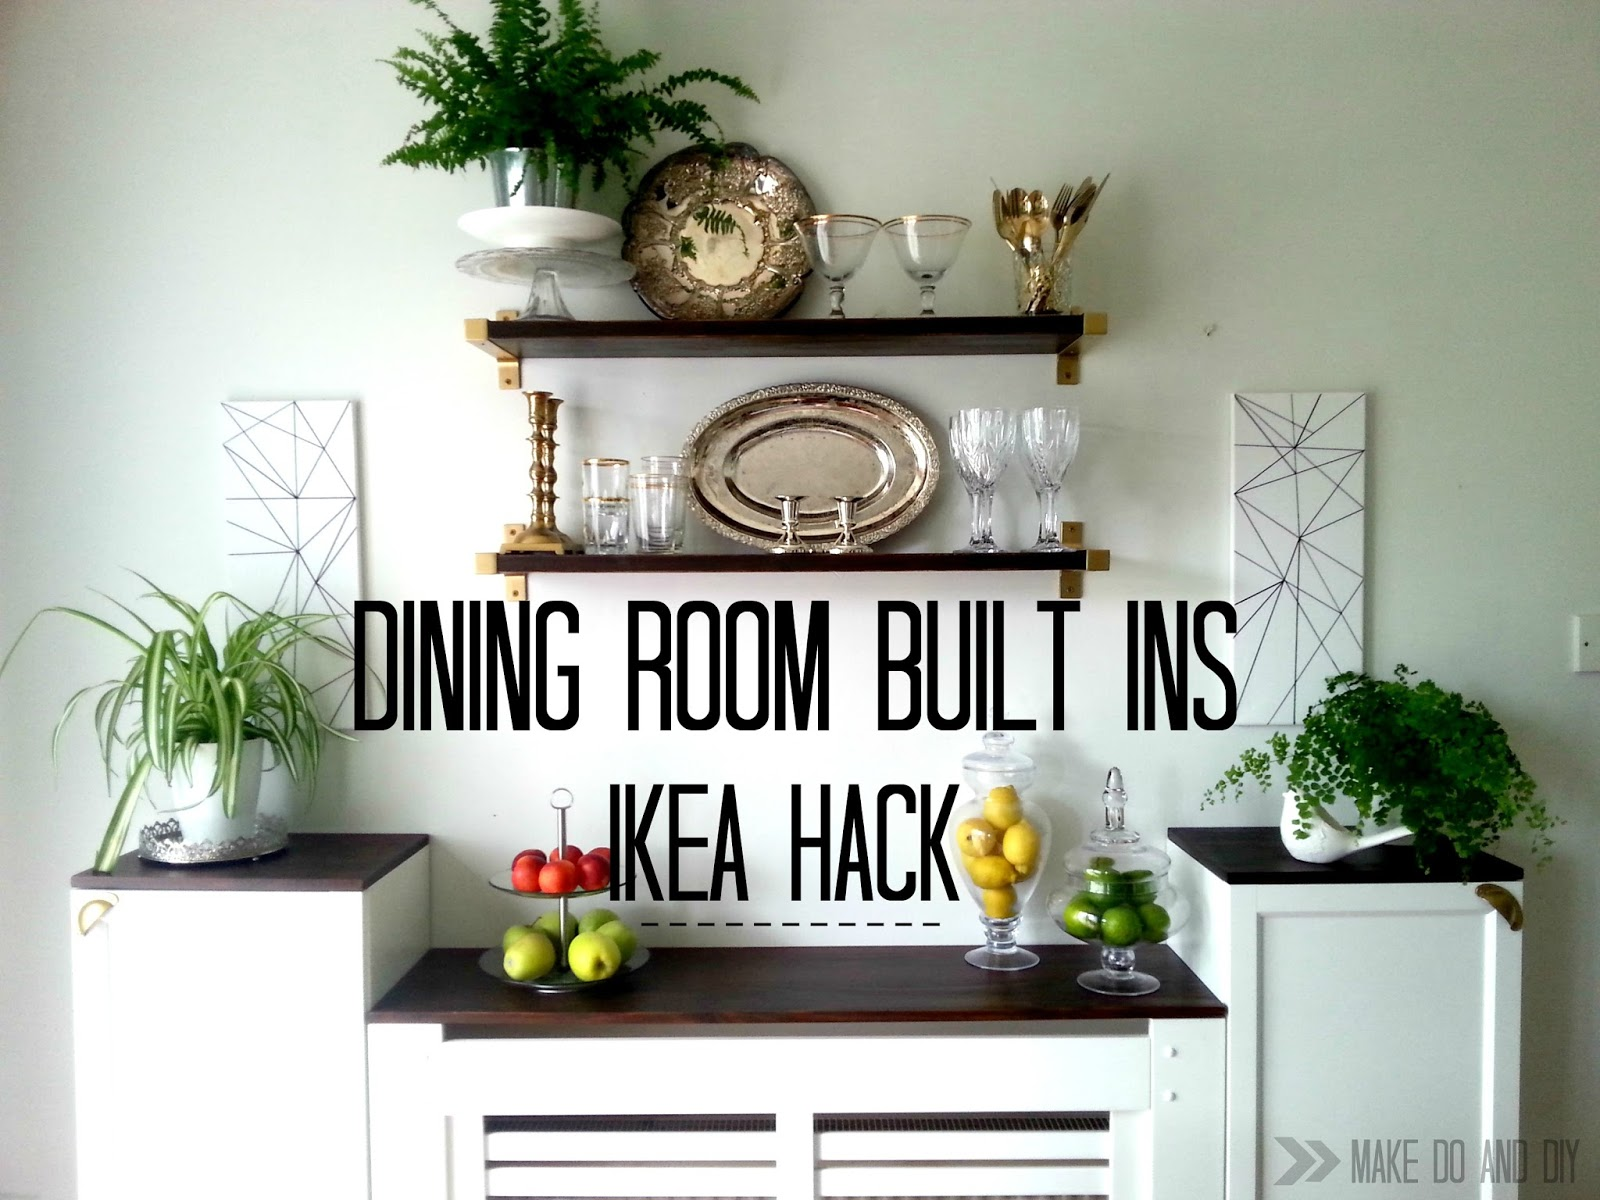 Ikea dining room storage - Ikea Hack Dining Room Buit In Storage From Billy Bookcases And Ekby Shelve